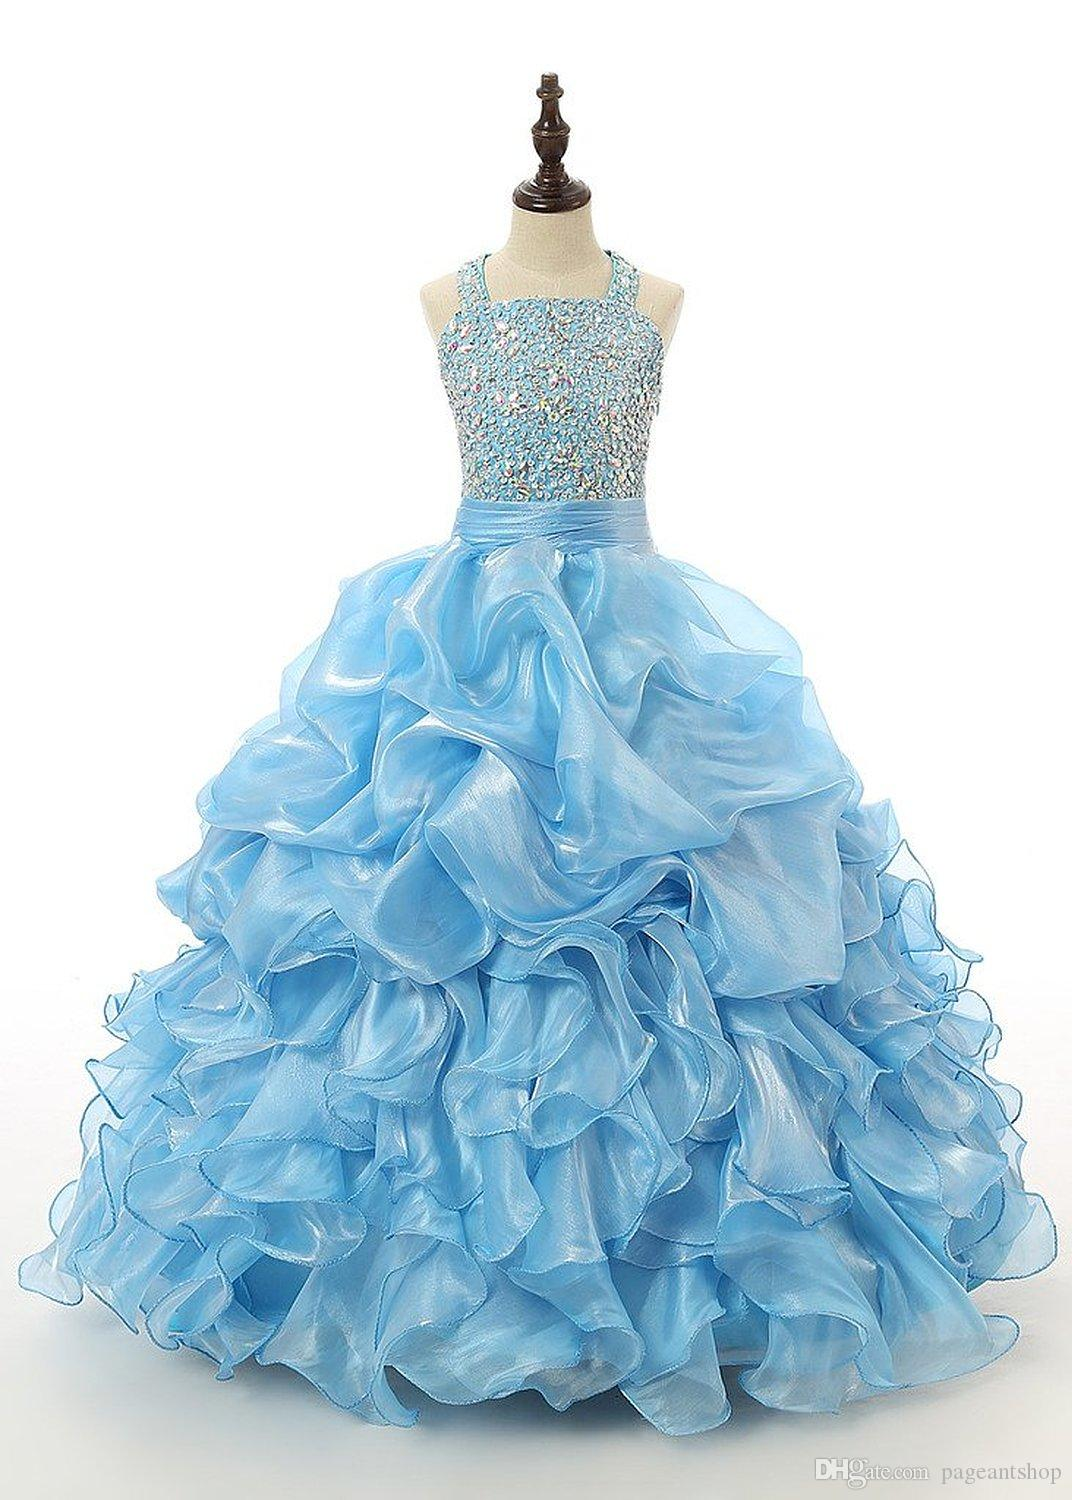 Turquoise Pageant Dresses For Girls Ruffles Crystal Kids Ball Gowns Princess Special Occasion Halter Dance Party Dresses Juniors Ball Gowns